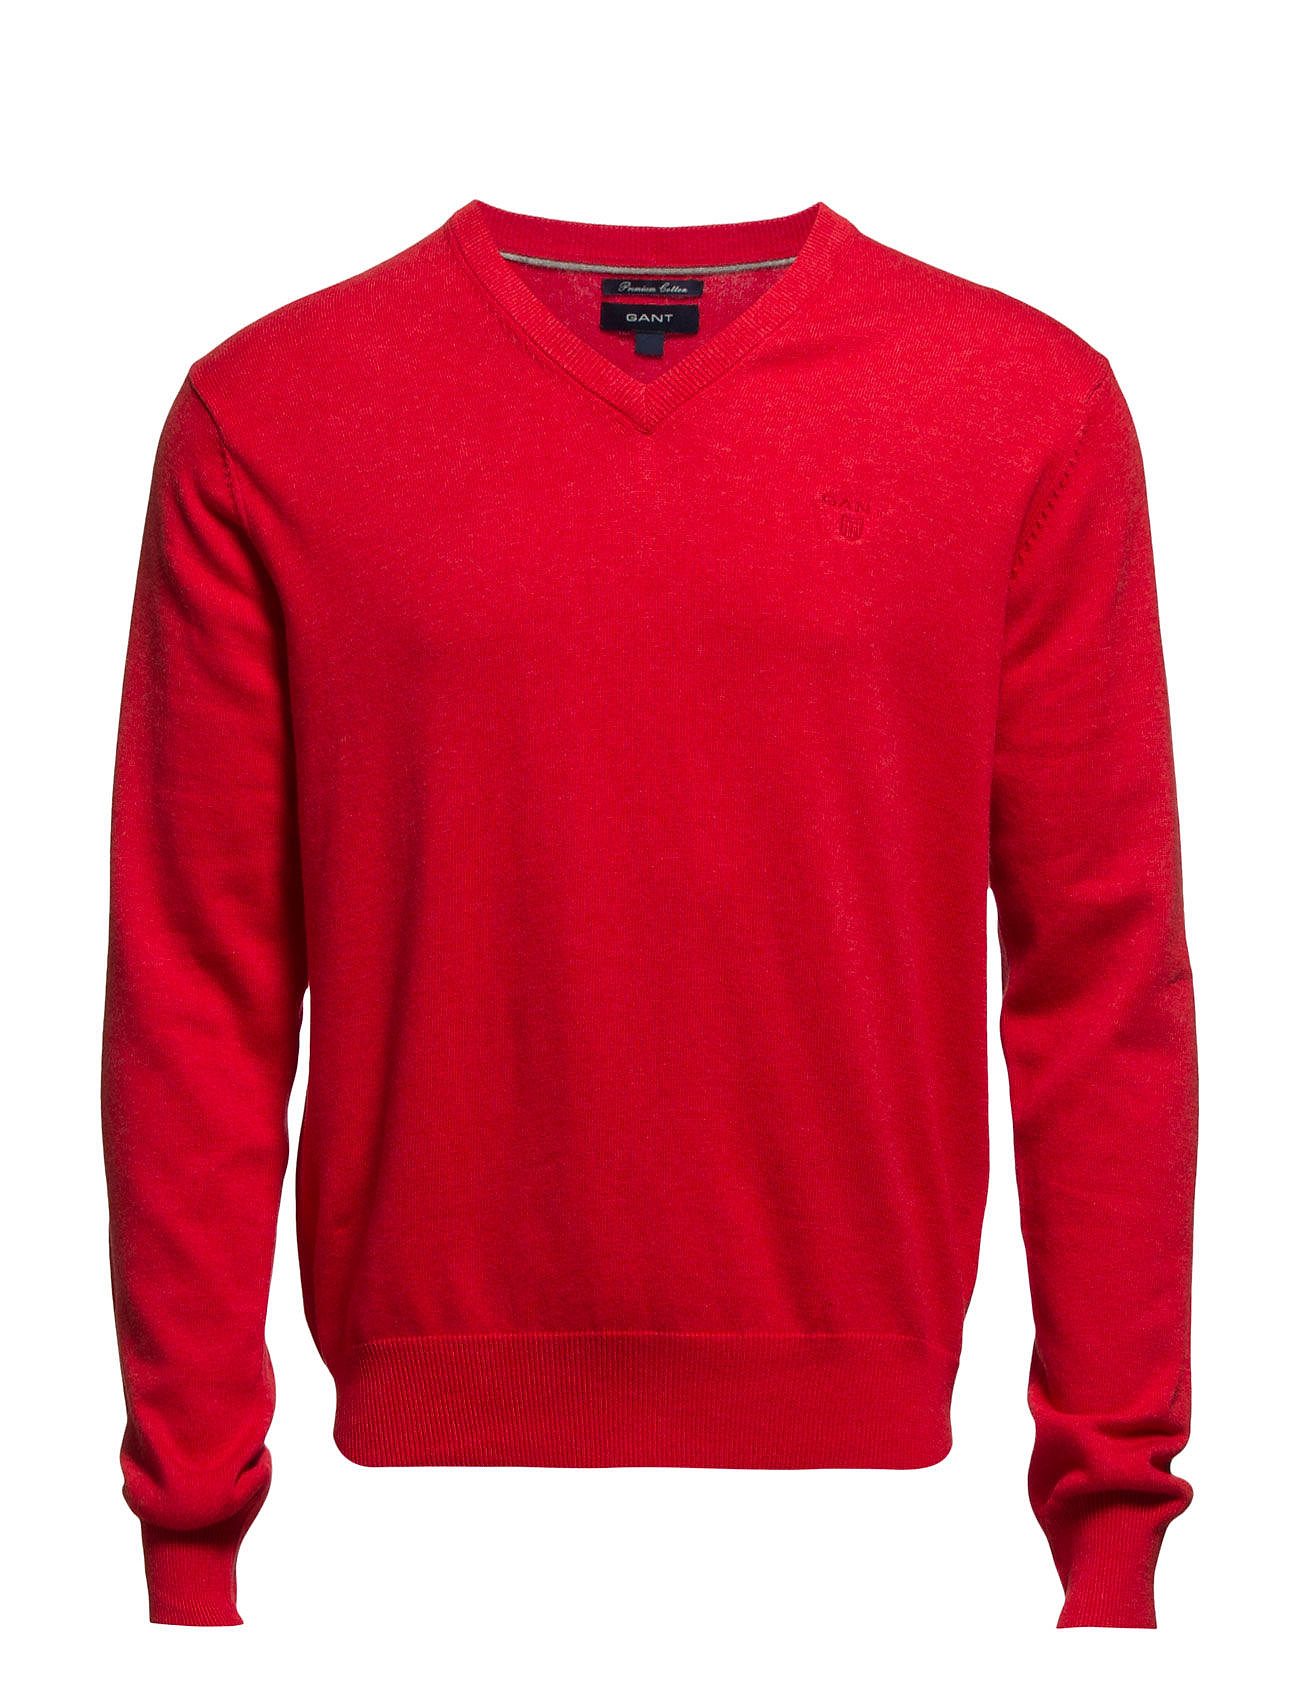 GANT LT. WEIGHT COTTON V-NECK - LIGHT RED MELANGE